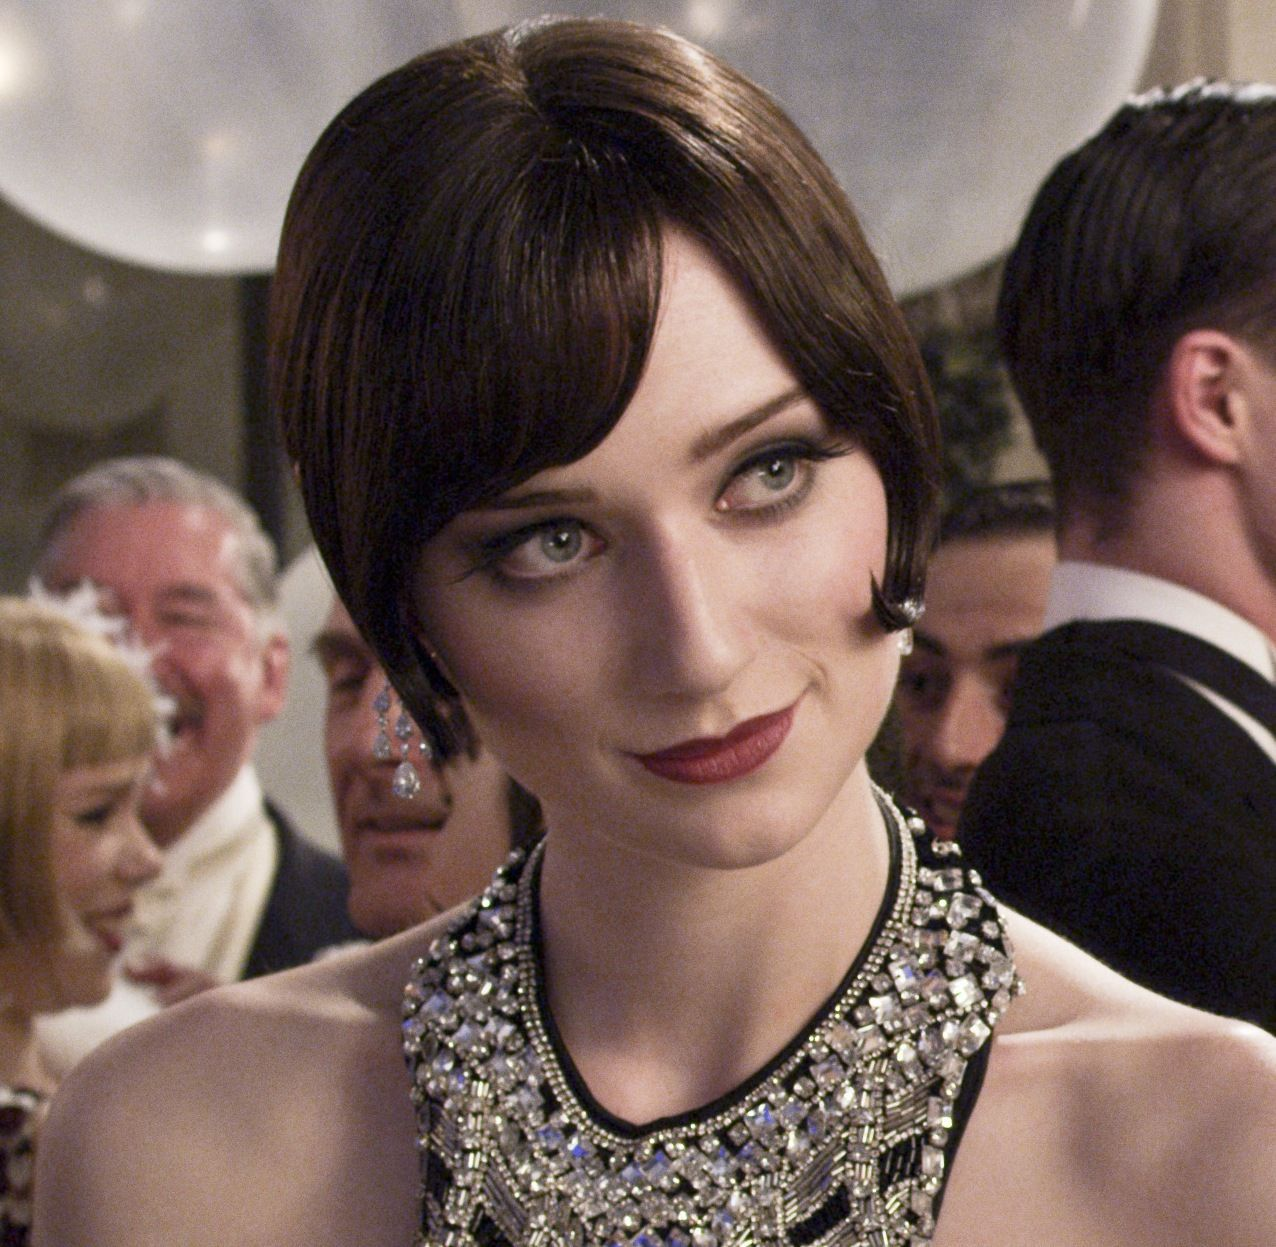 Jordan Baker in Gatsby has the best outfits!